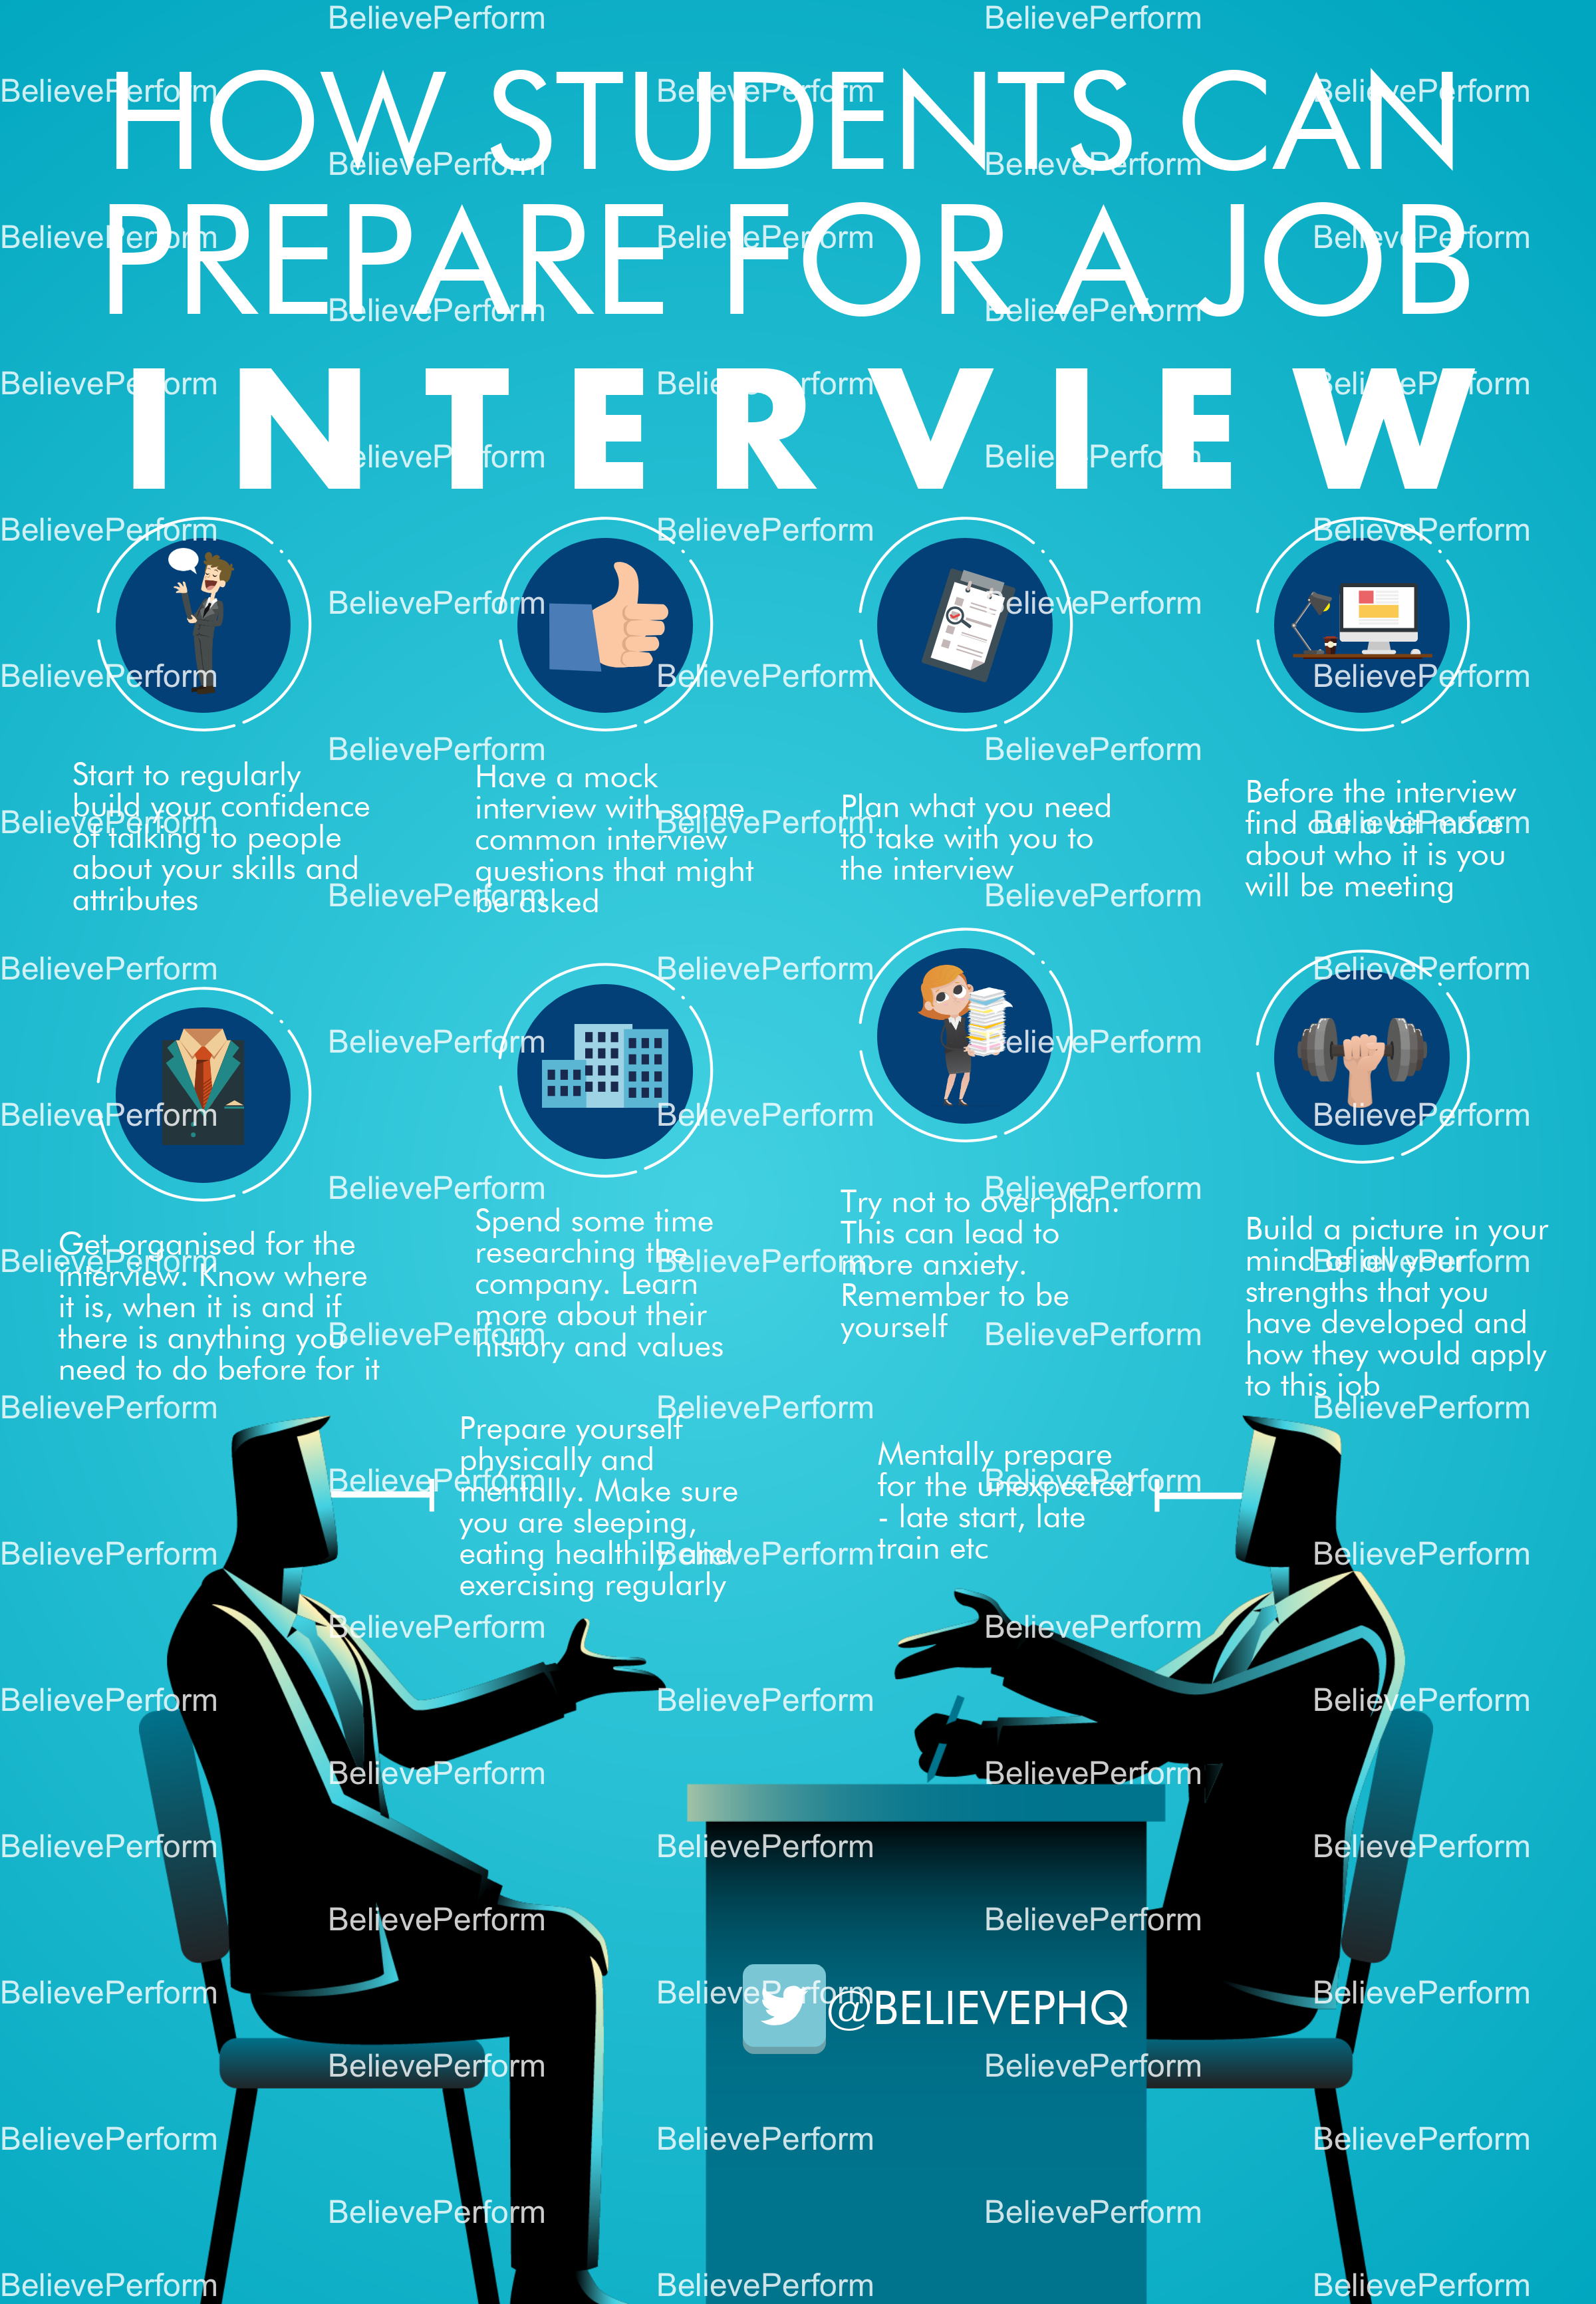 How students can prepare for a job interview